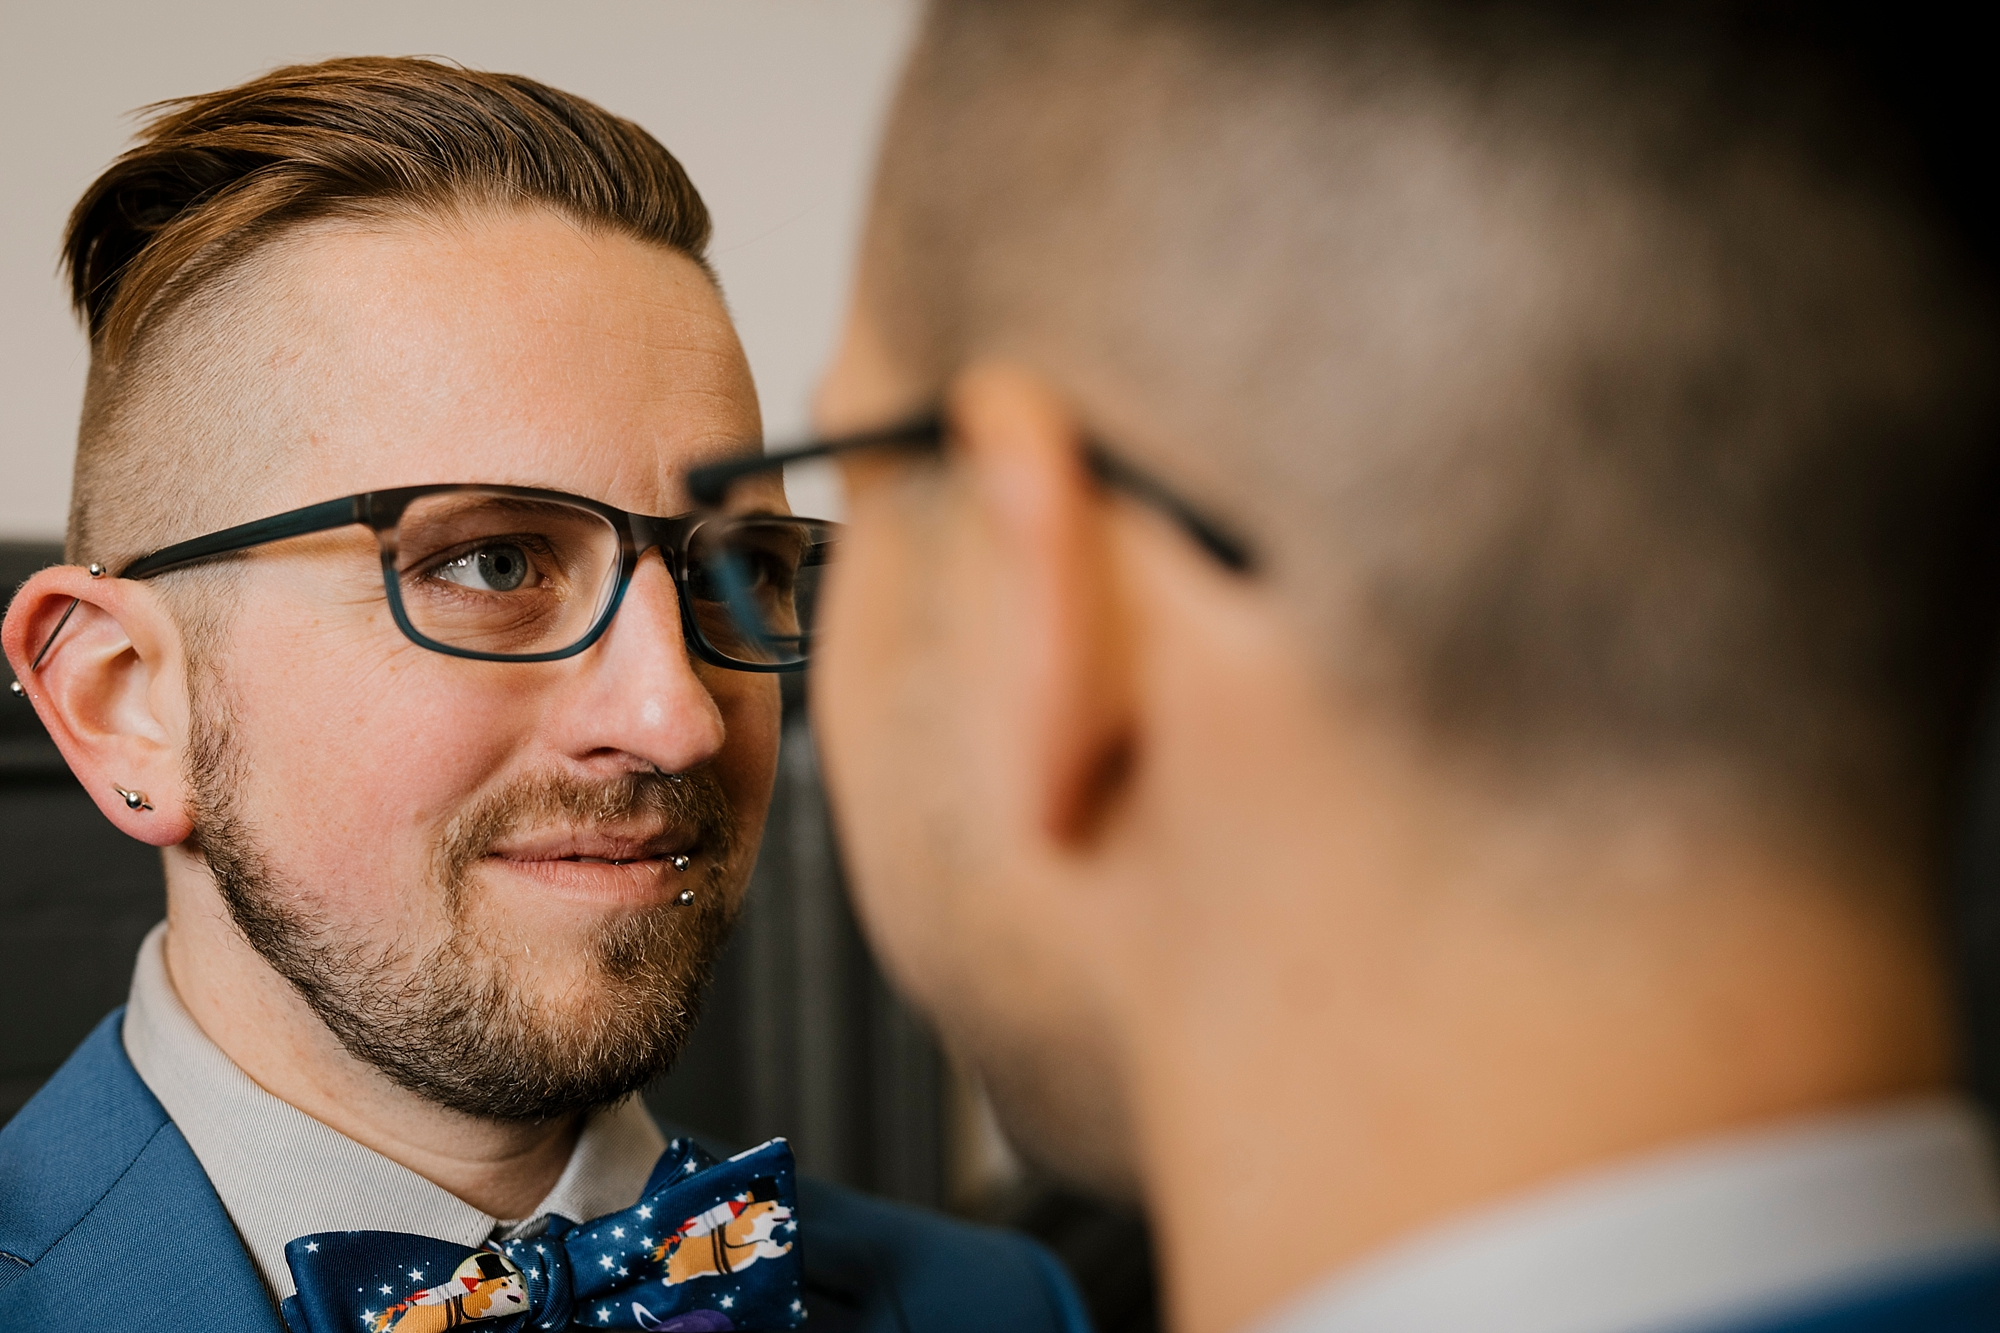 Joe_Mac_Creative_Philadelphia_Philly_LGBT_Gay_Engagement_Wedding_Photography__0105.jpg